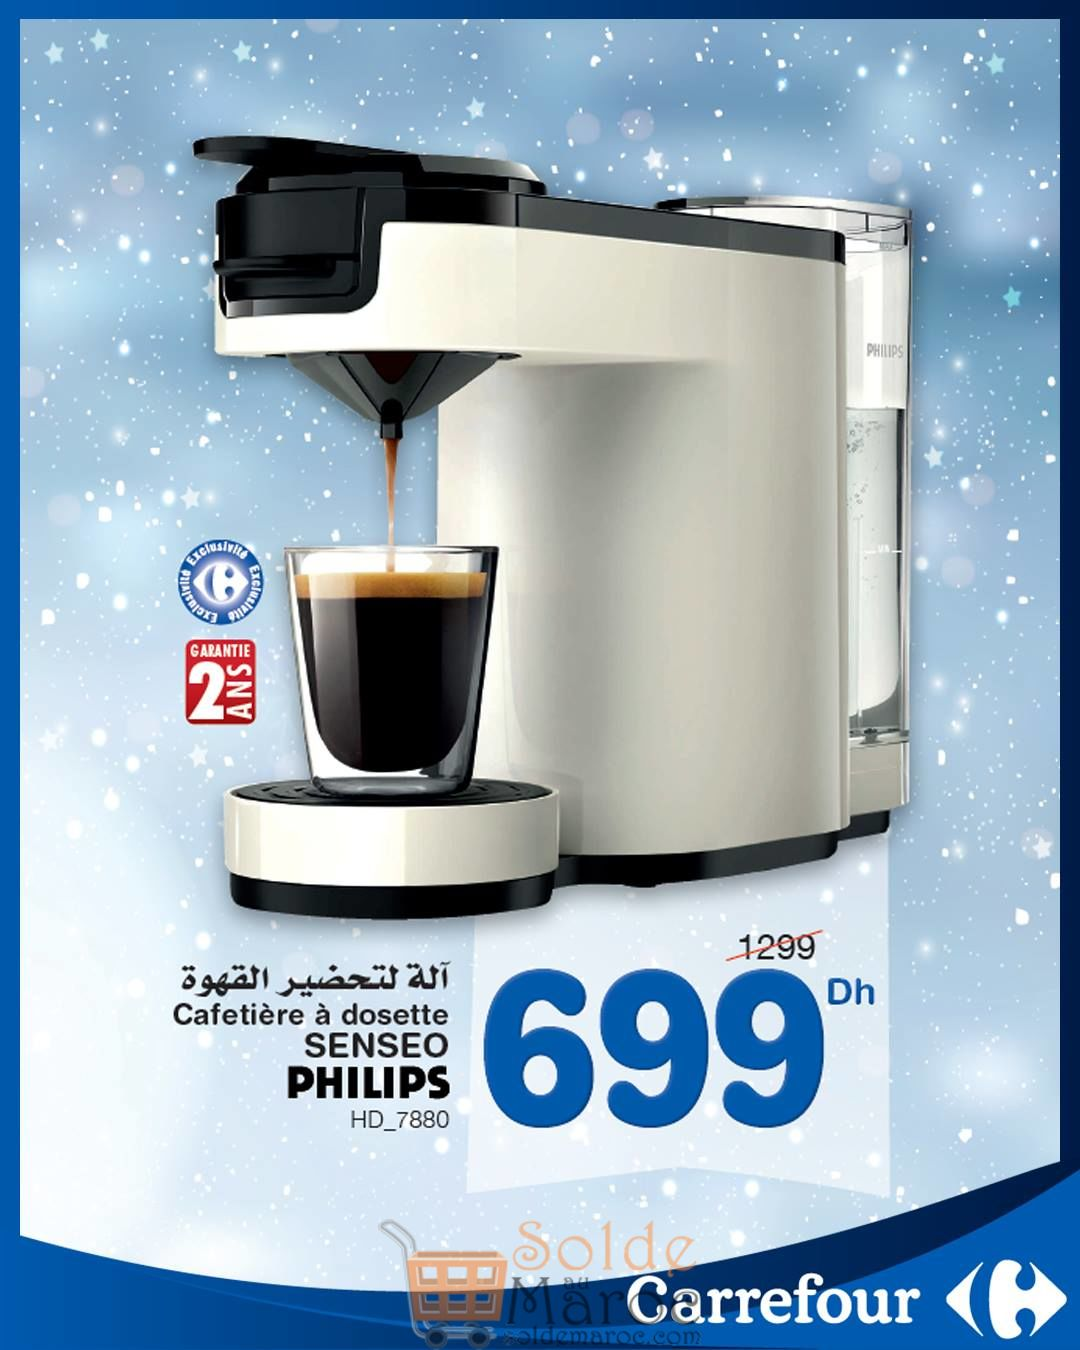 promo carrefour maroc cafeti re dosette senseo philips 699dhs promotion du maroc. Black Bedroom Furniture Sets. Home Design Ideas